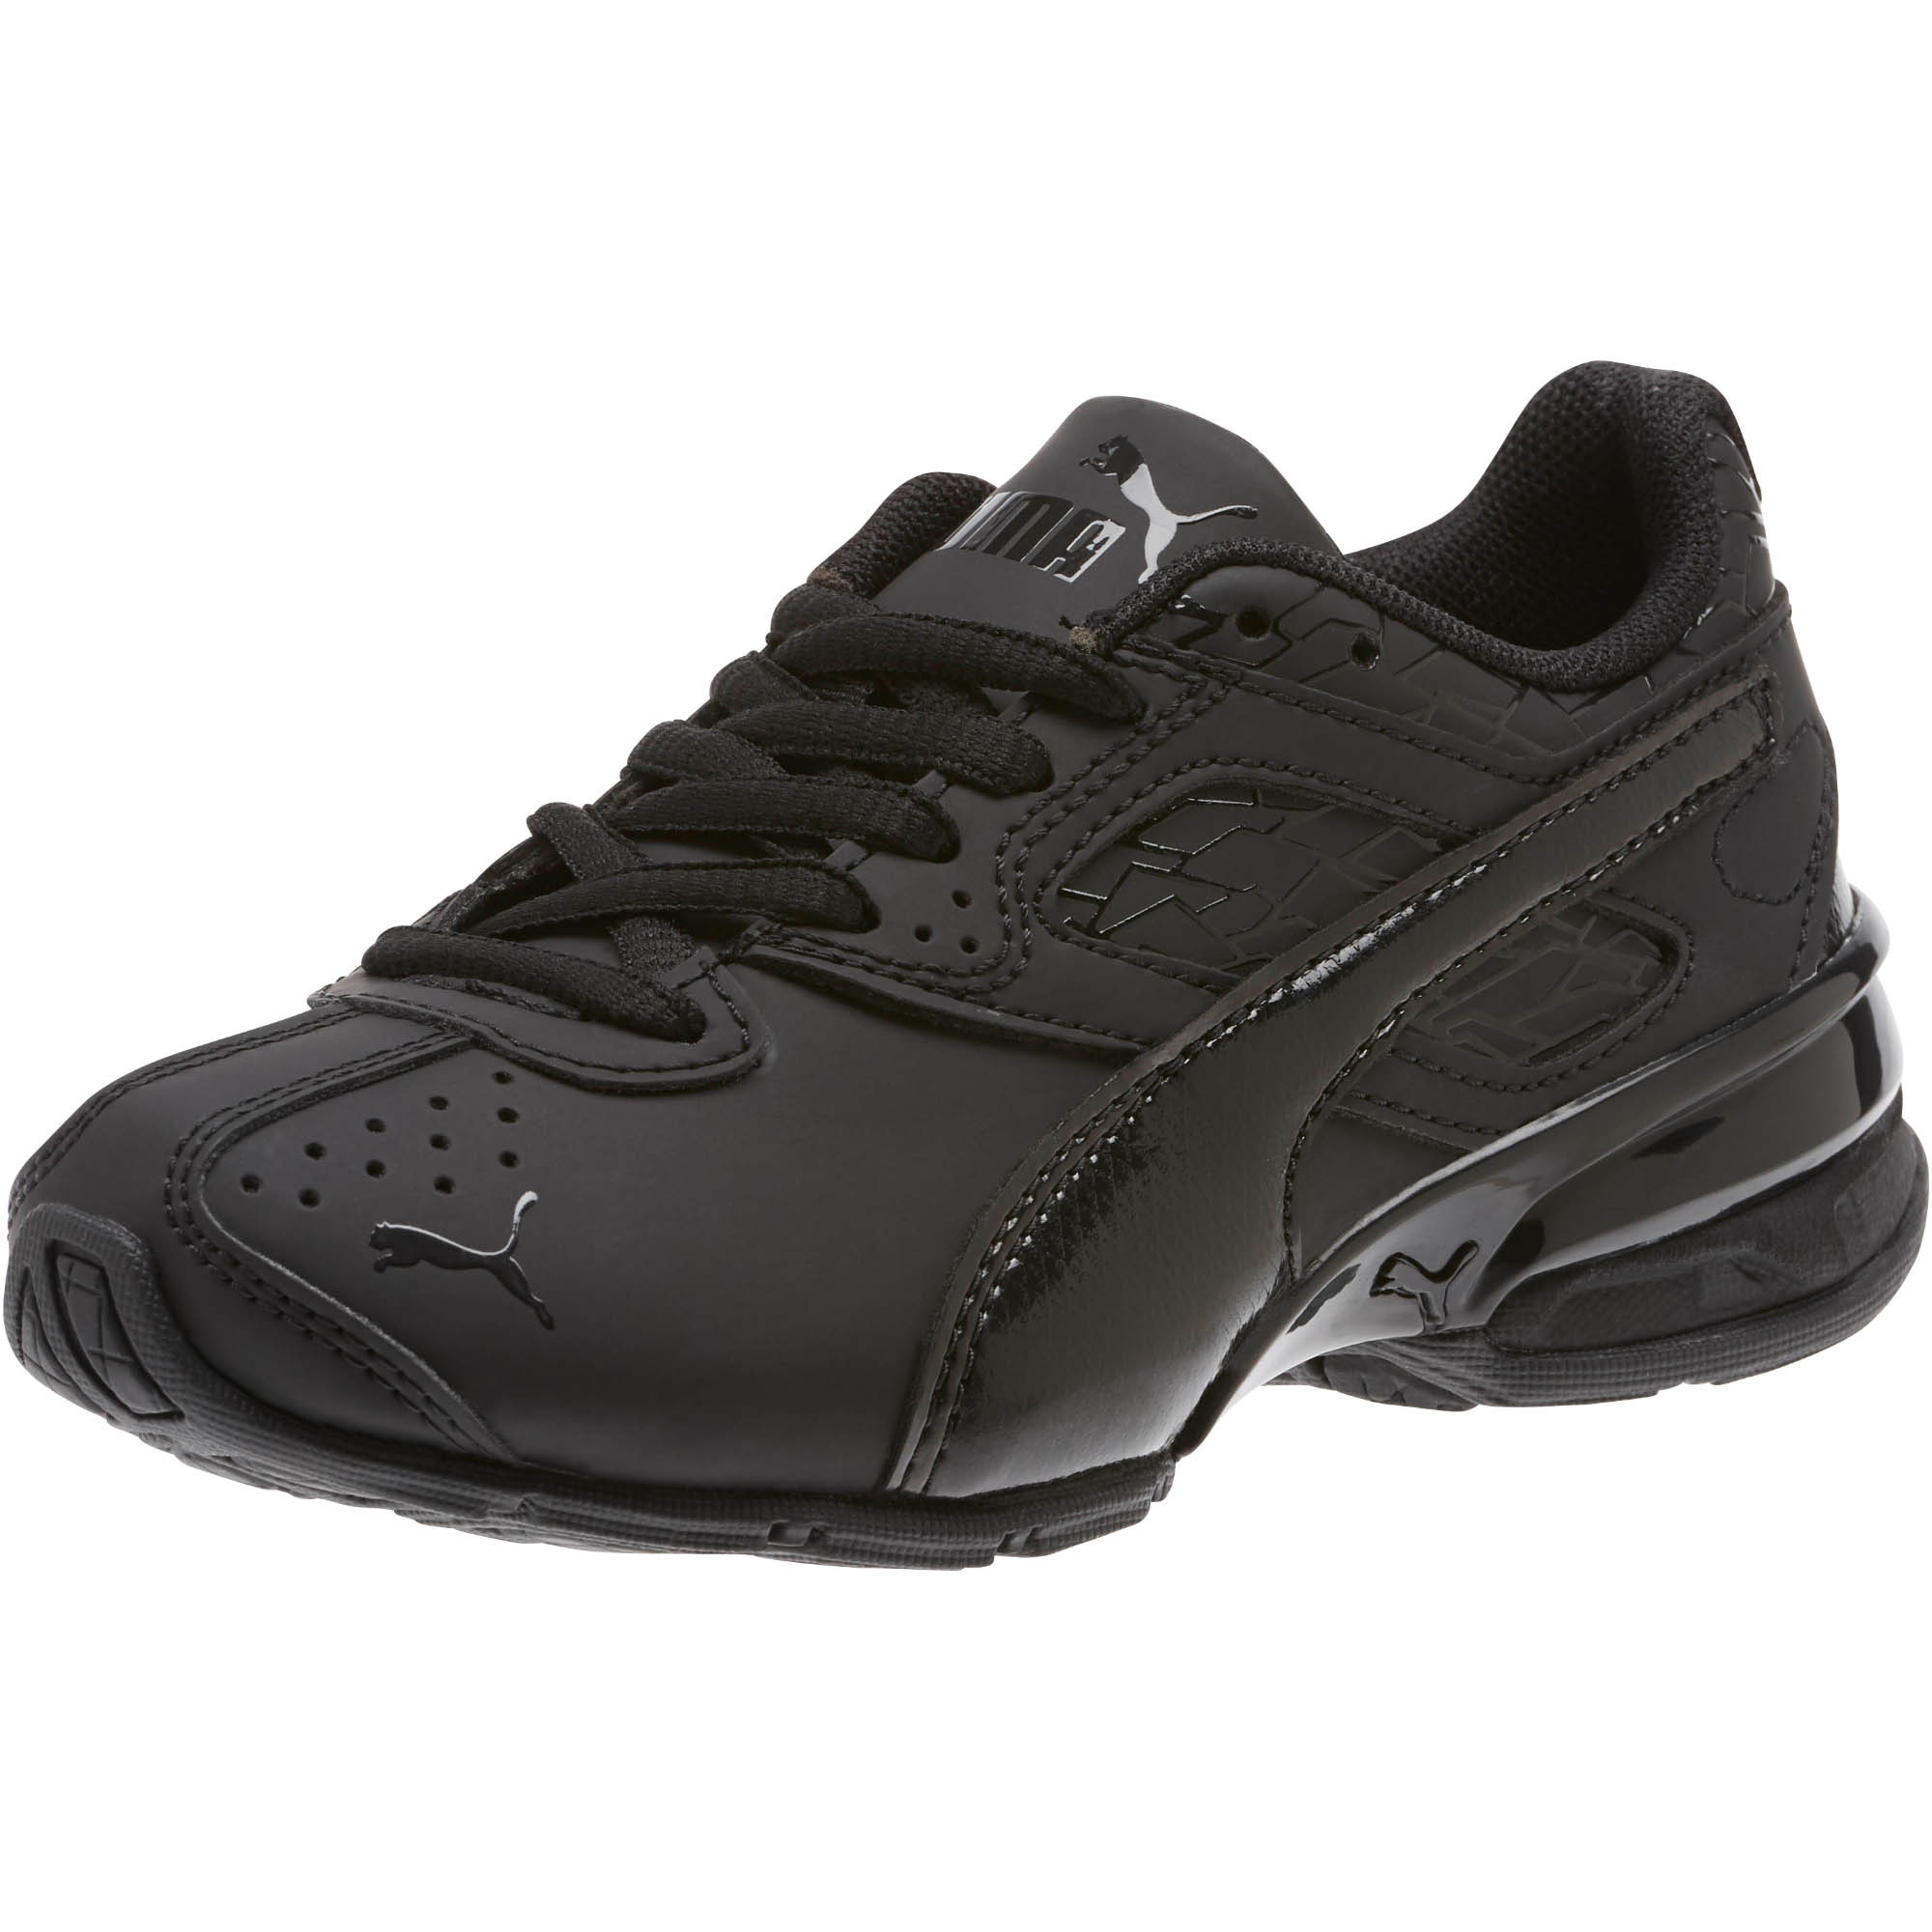 PUMA-Tazon-6-Fracture-AC-Little-Kids-039-Shoes-Kids-Shoe-Kids thumbnail 10